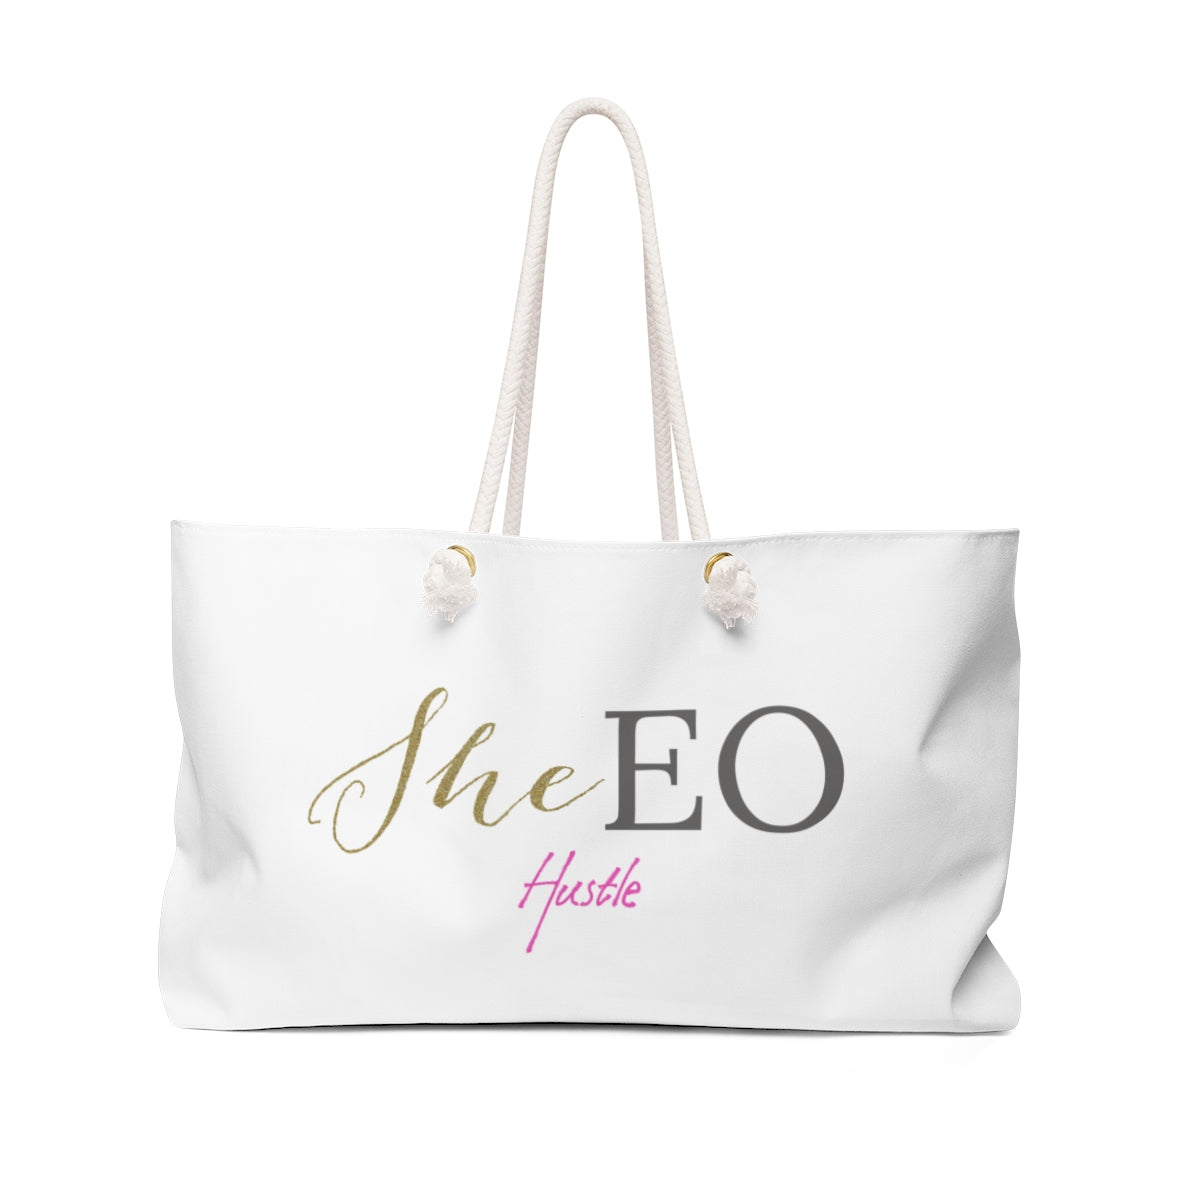 SheEO Hustle Weekender Bag